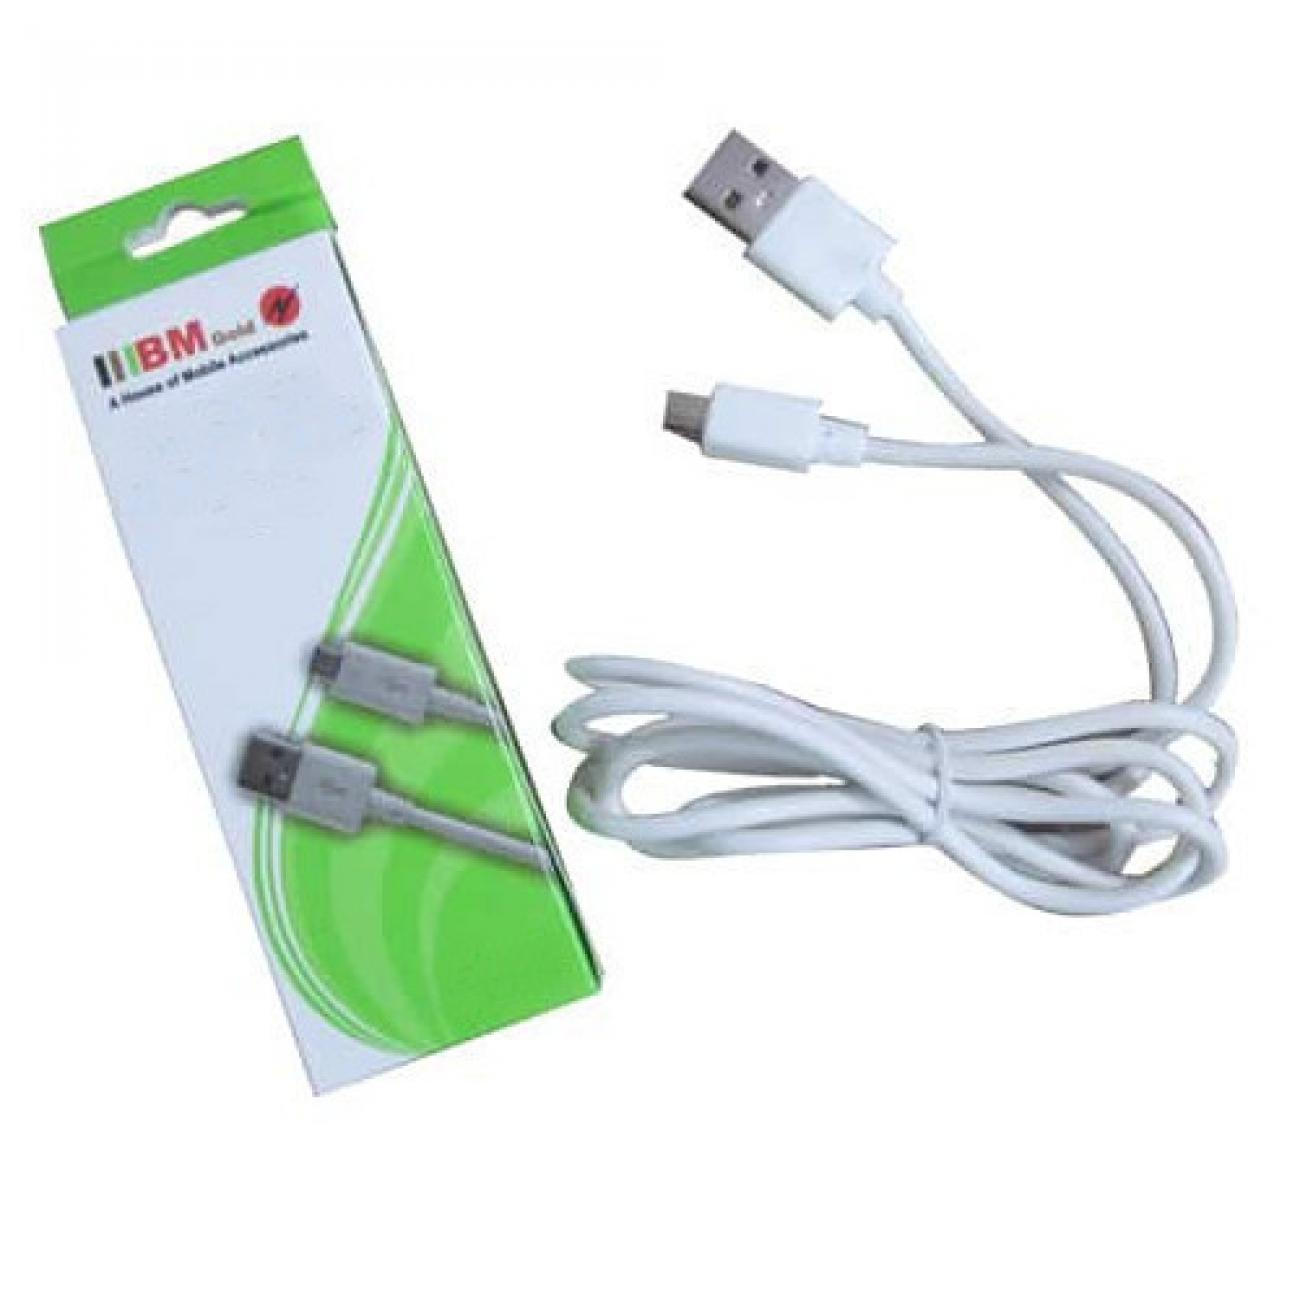 Mobile Device Cable